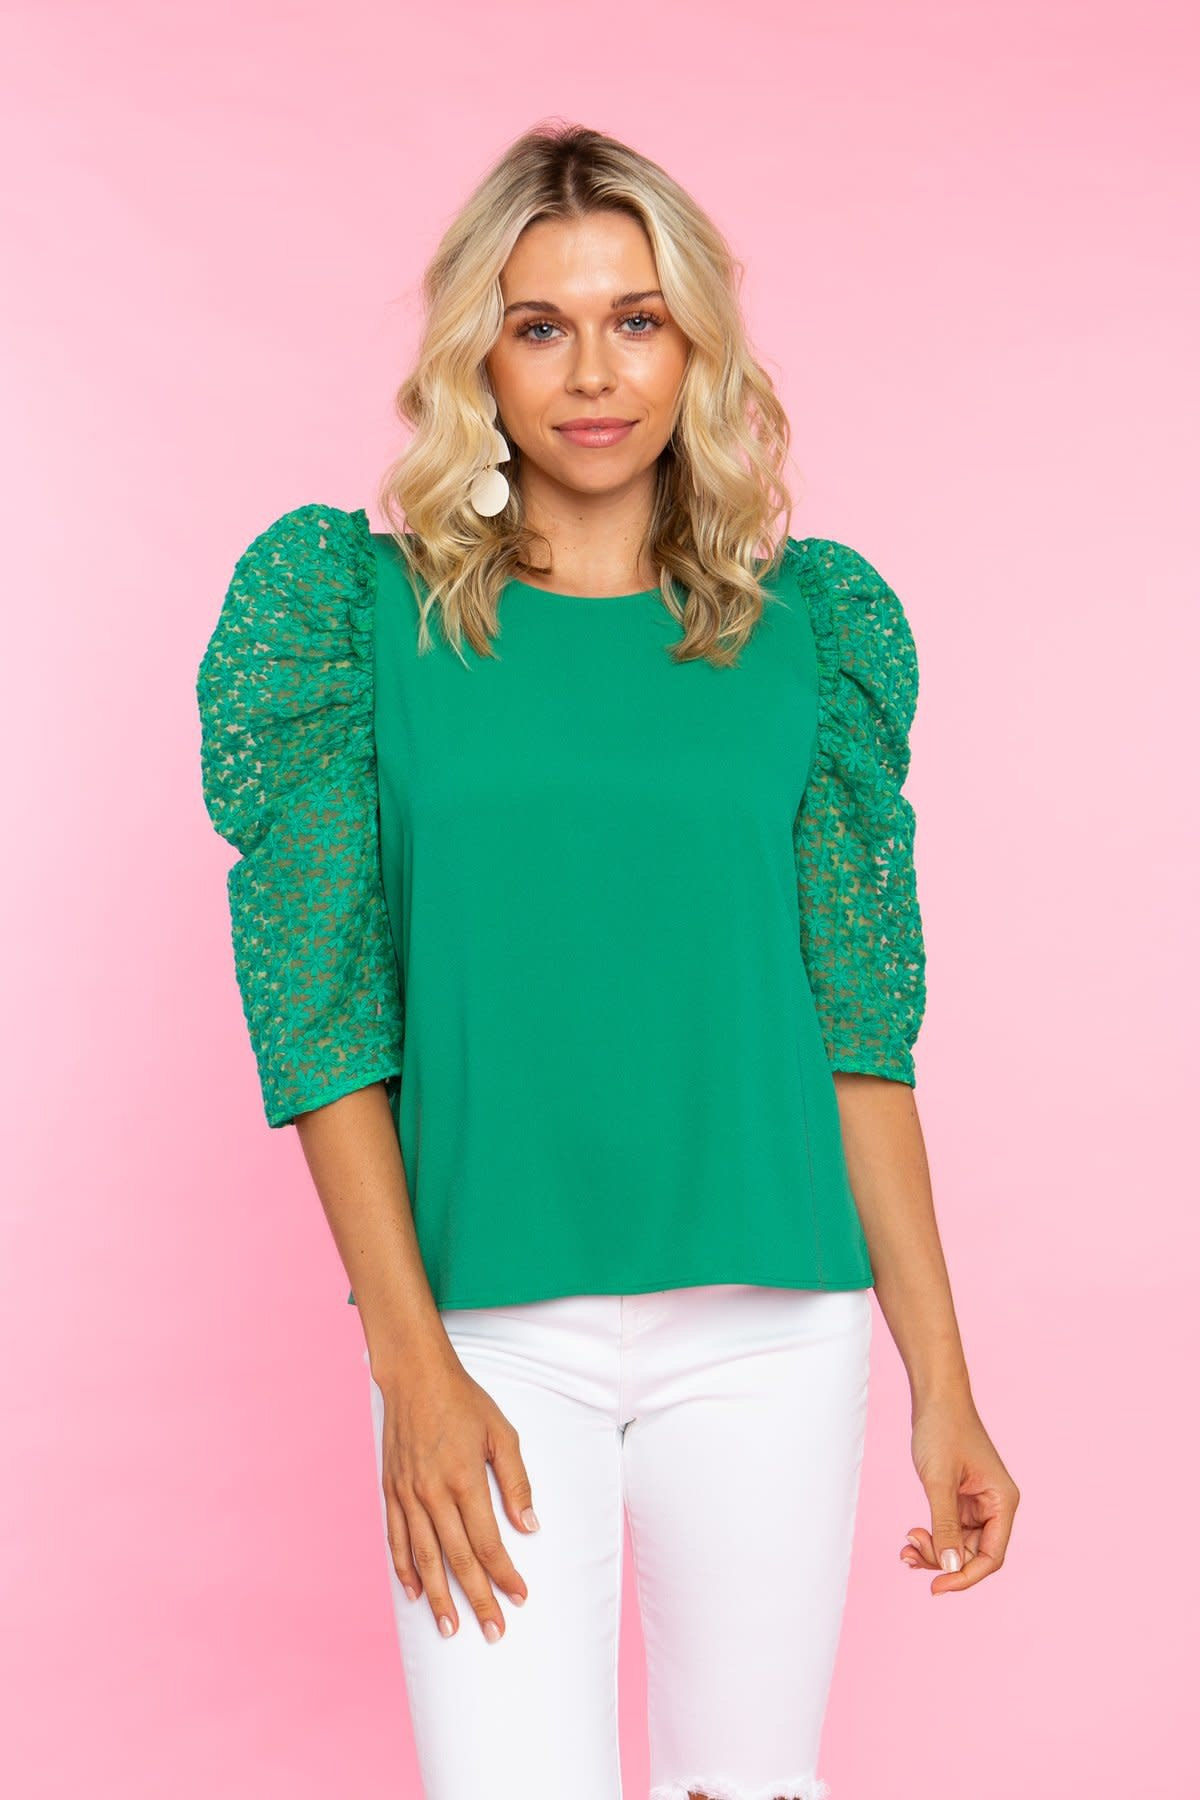 Crosby By Mollie Burch Lurie Top in Clover